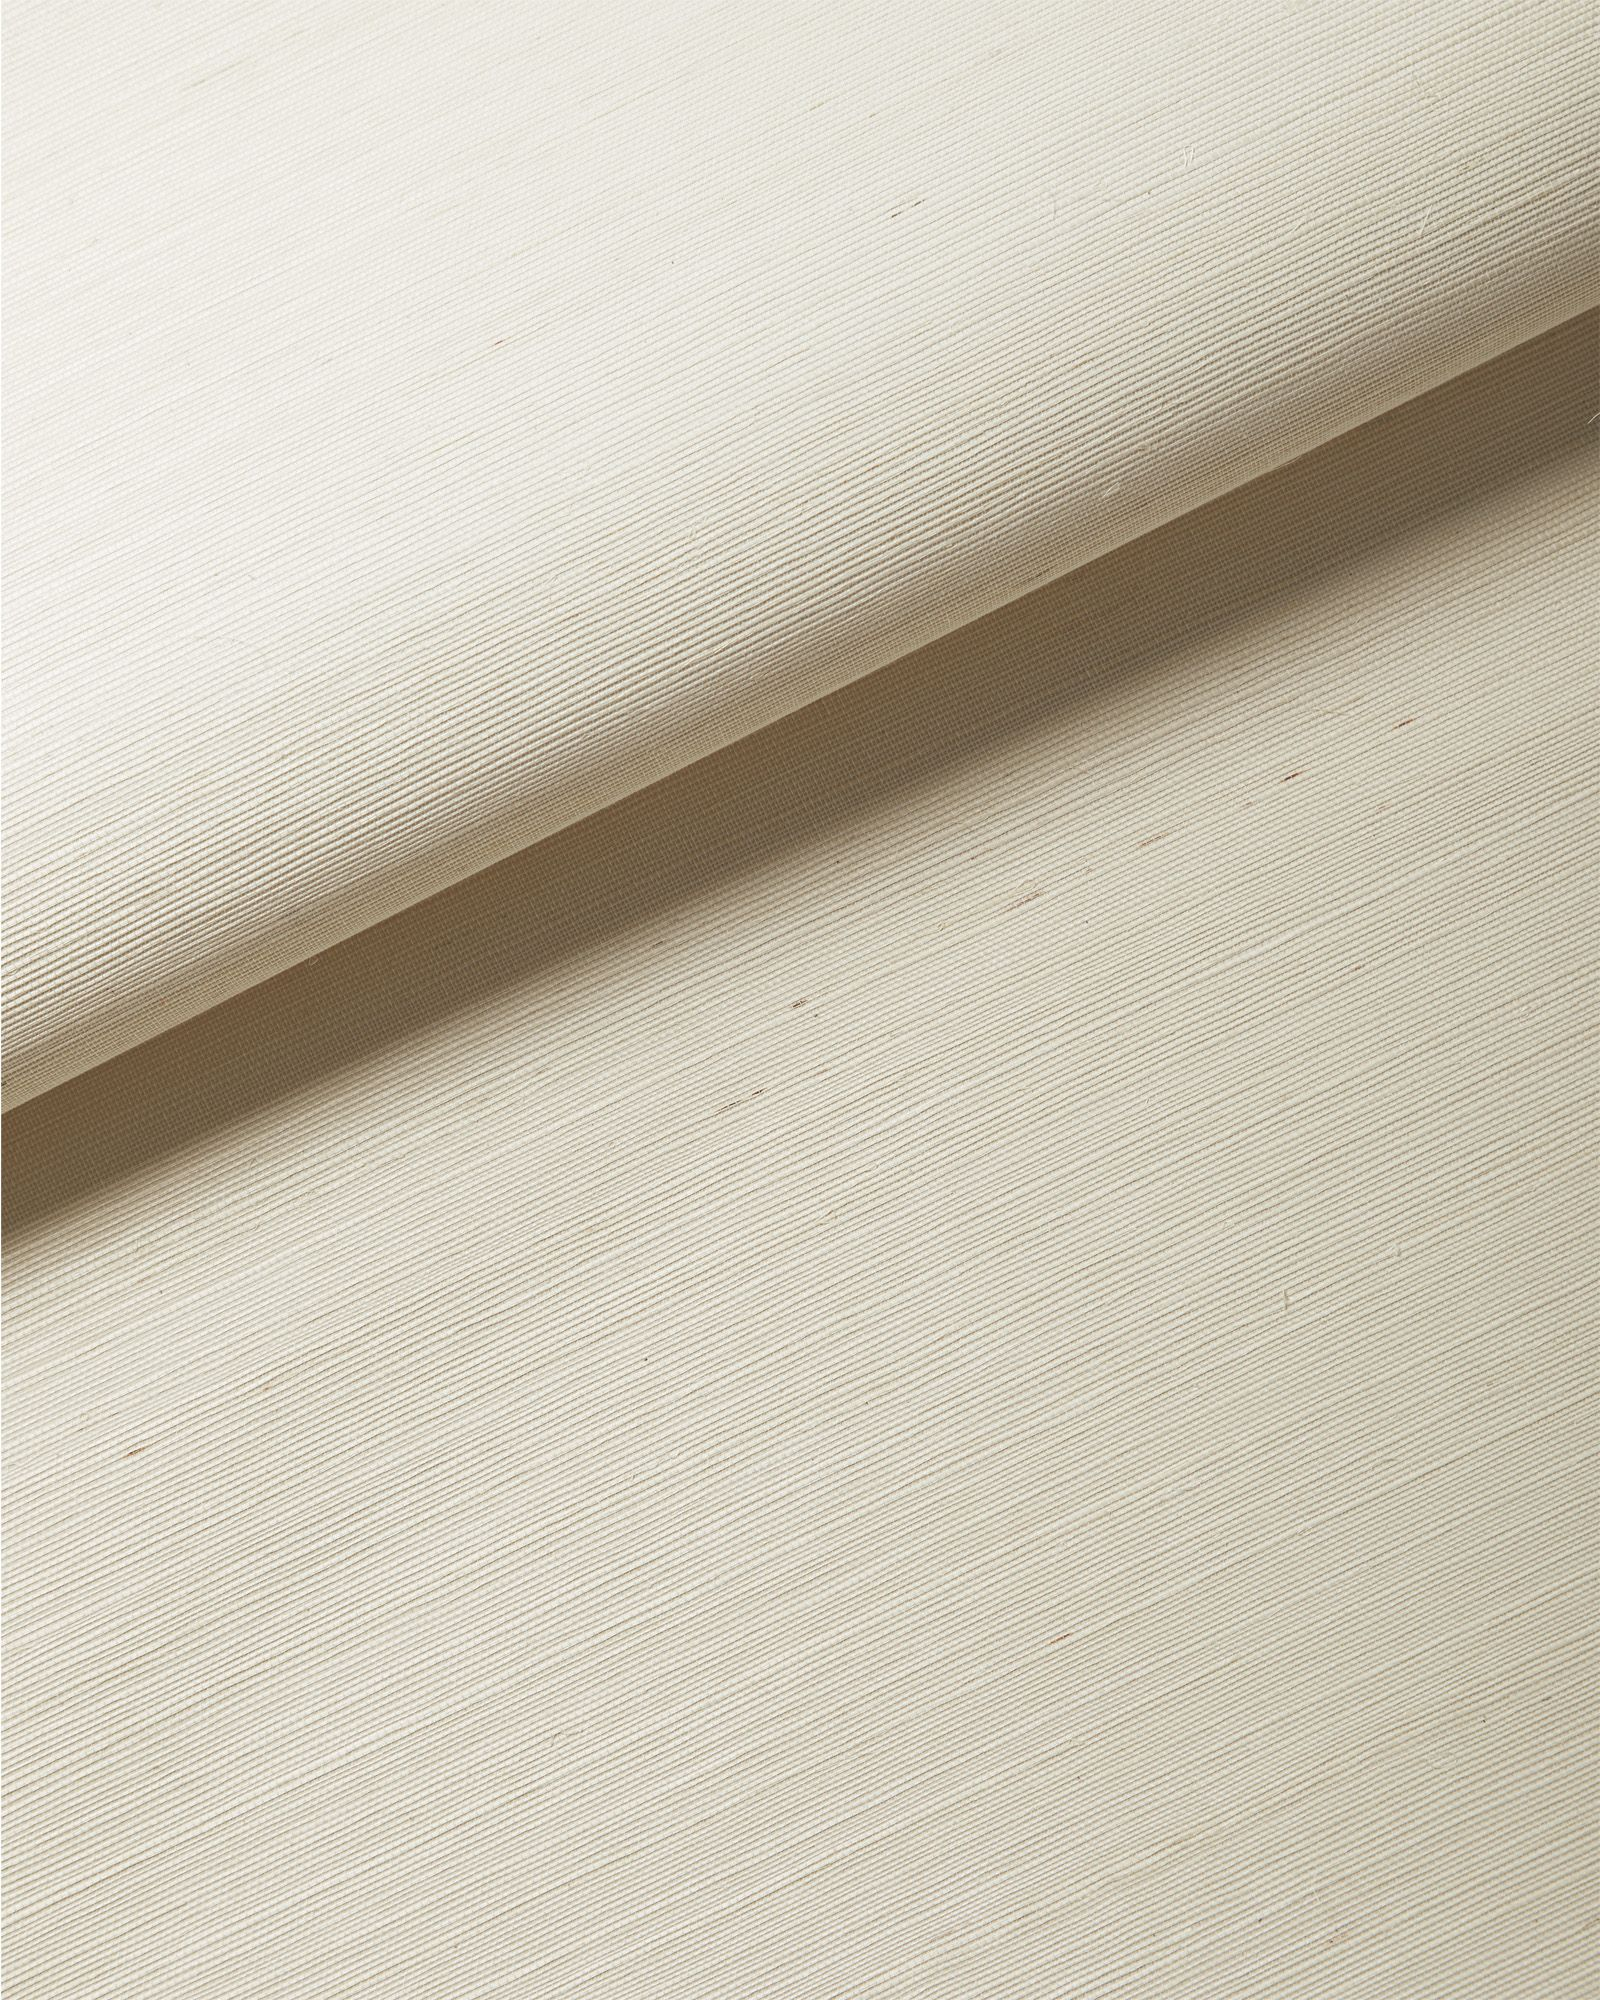 Grasscloth Wallcovering Organic beauty, Swatch